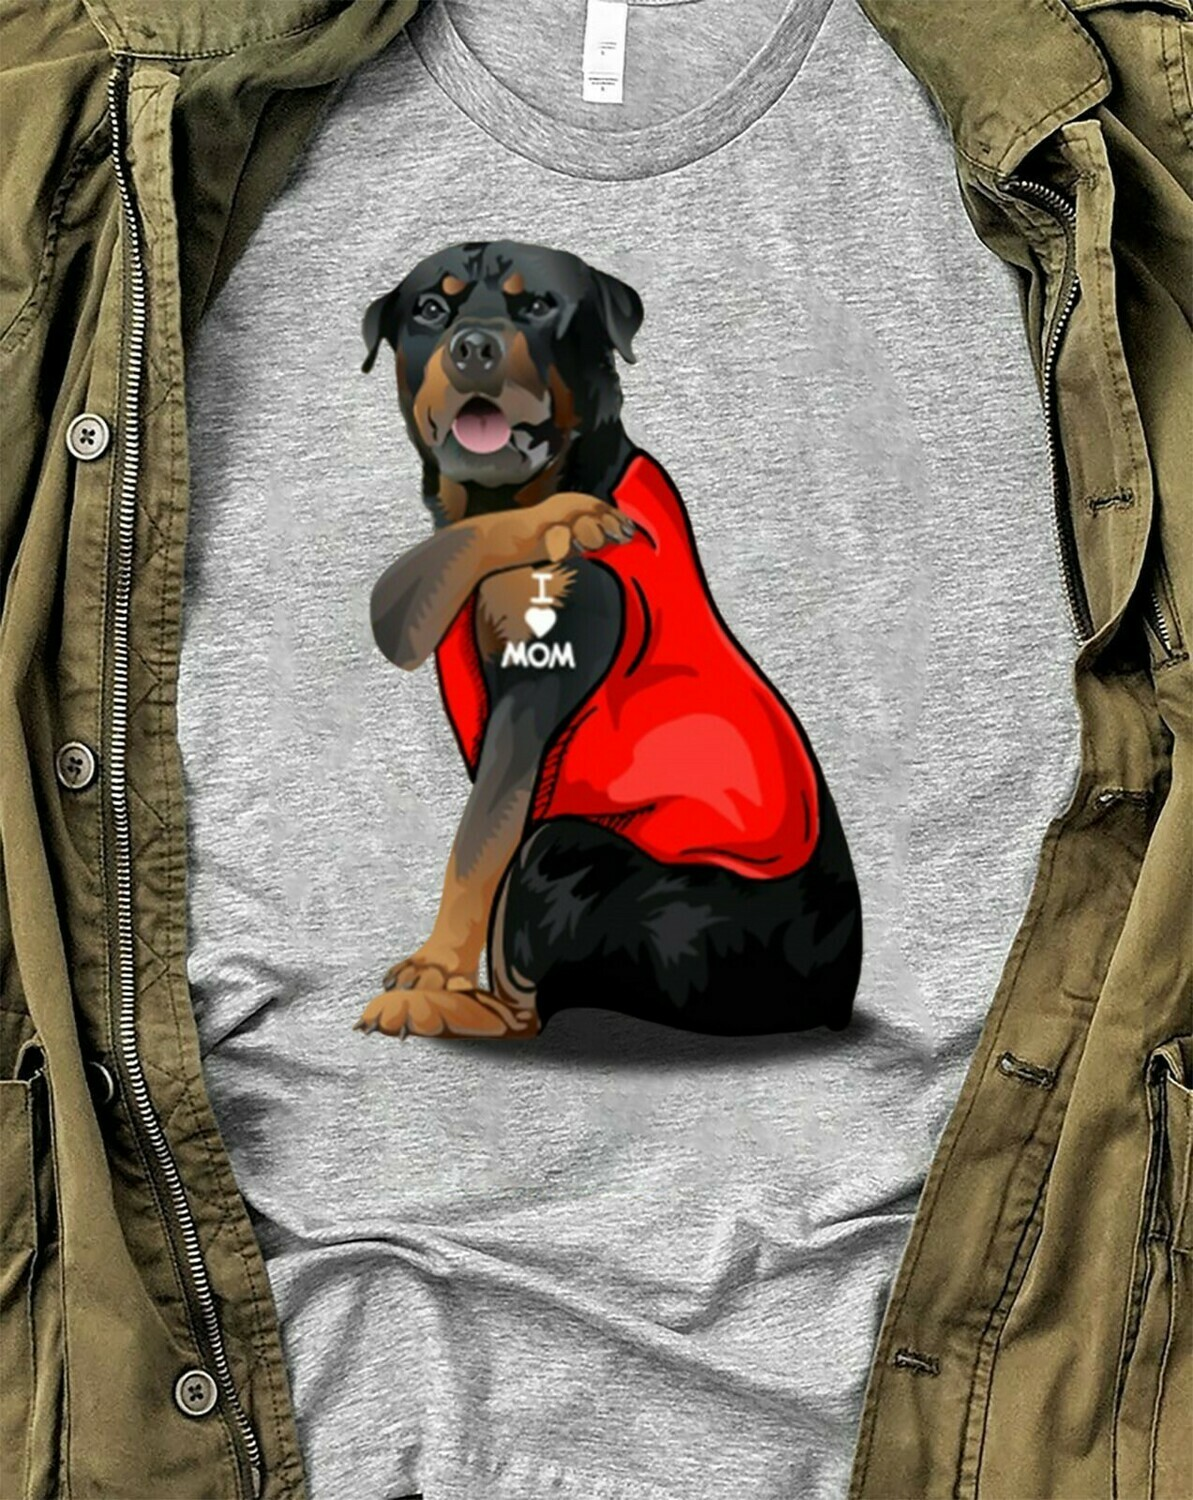 Rottweiler Dog Tattoos I Love Mom Funny Shirt T-Shirt Hoodie Sweatshirt Sweater Tee Kids Youth Gifts Jolly Family Gifts